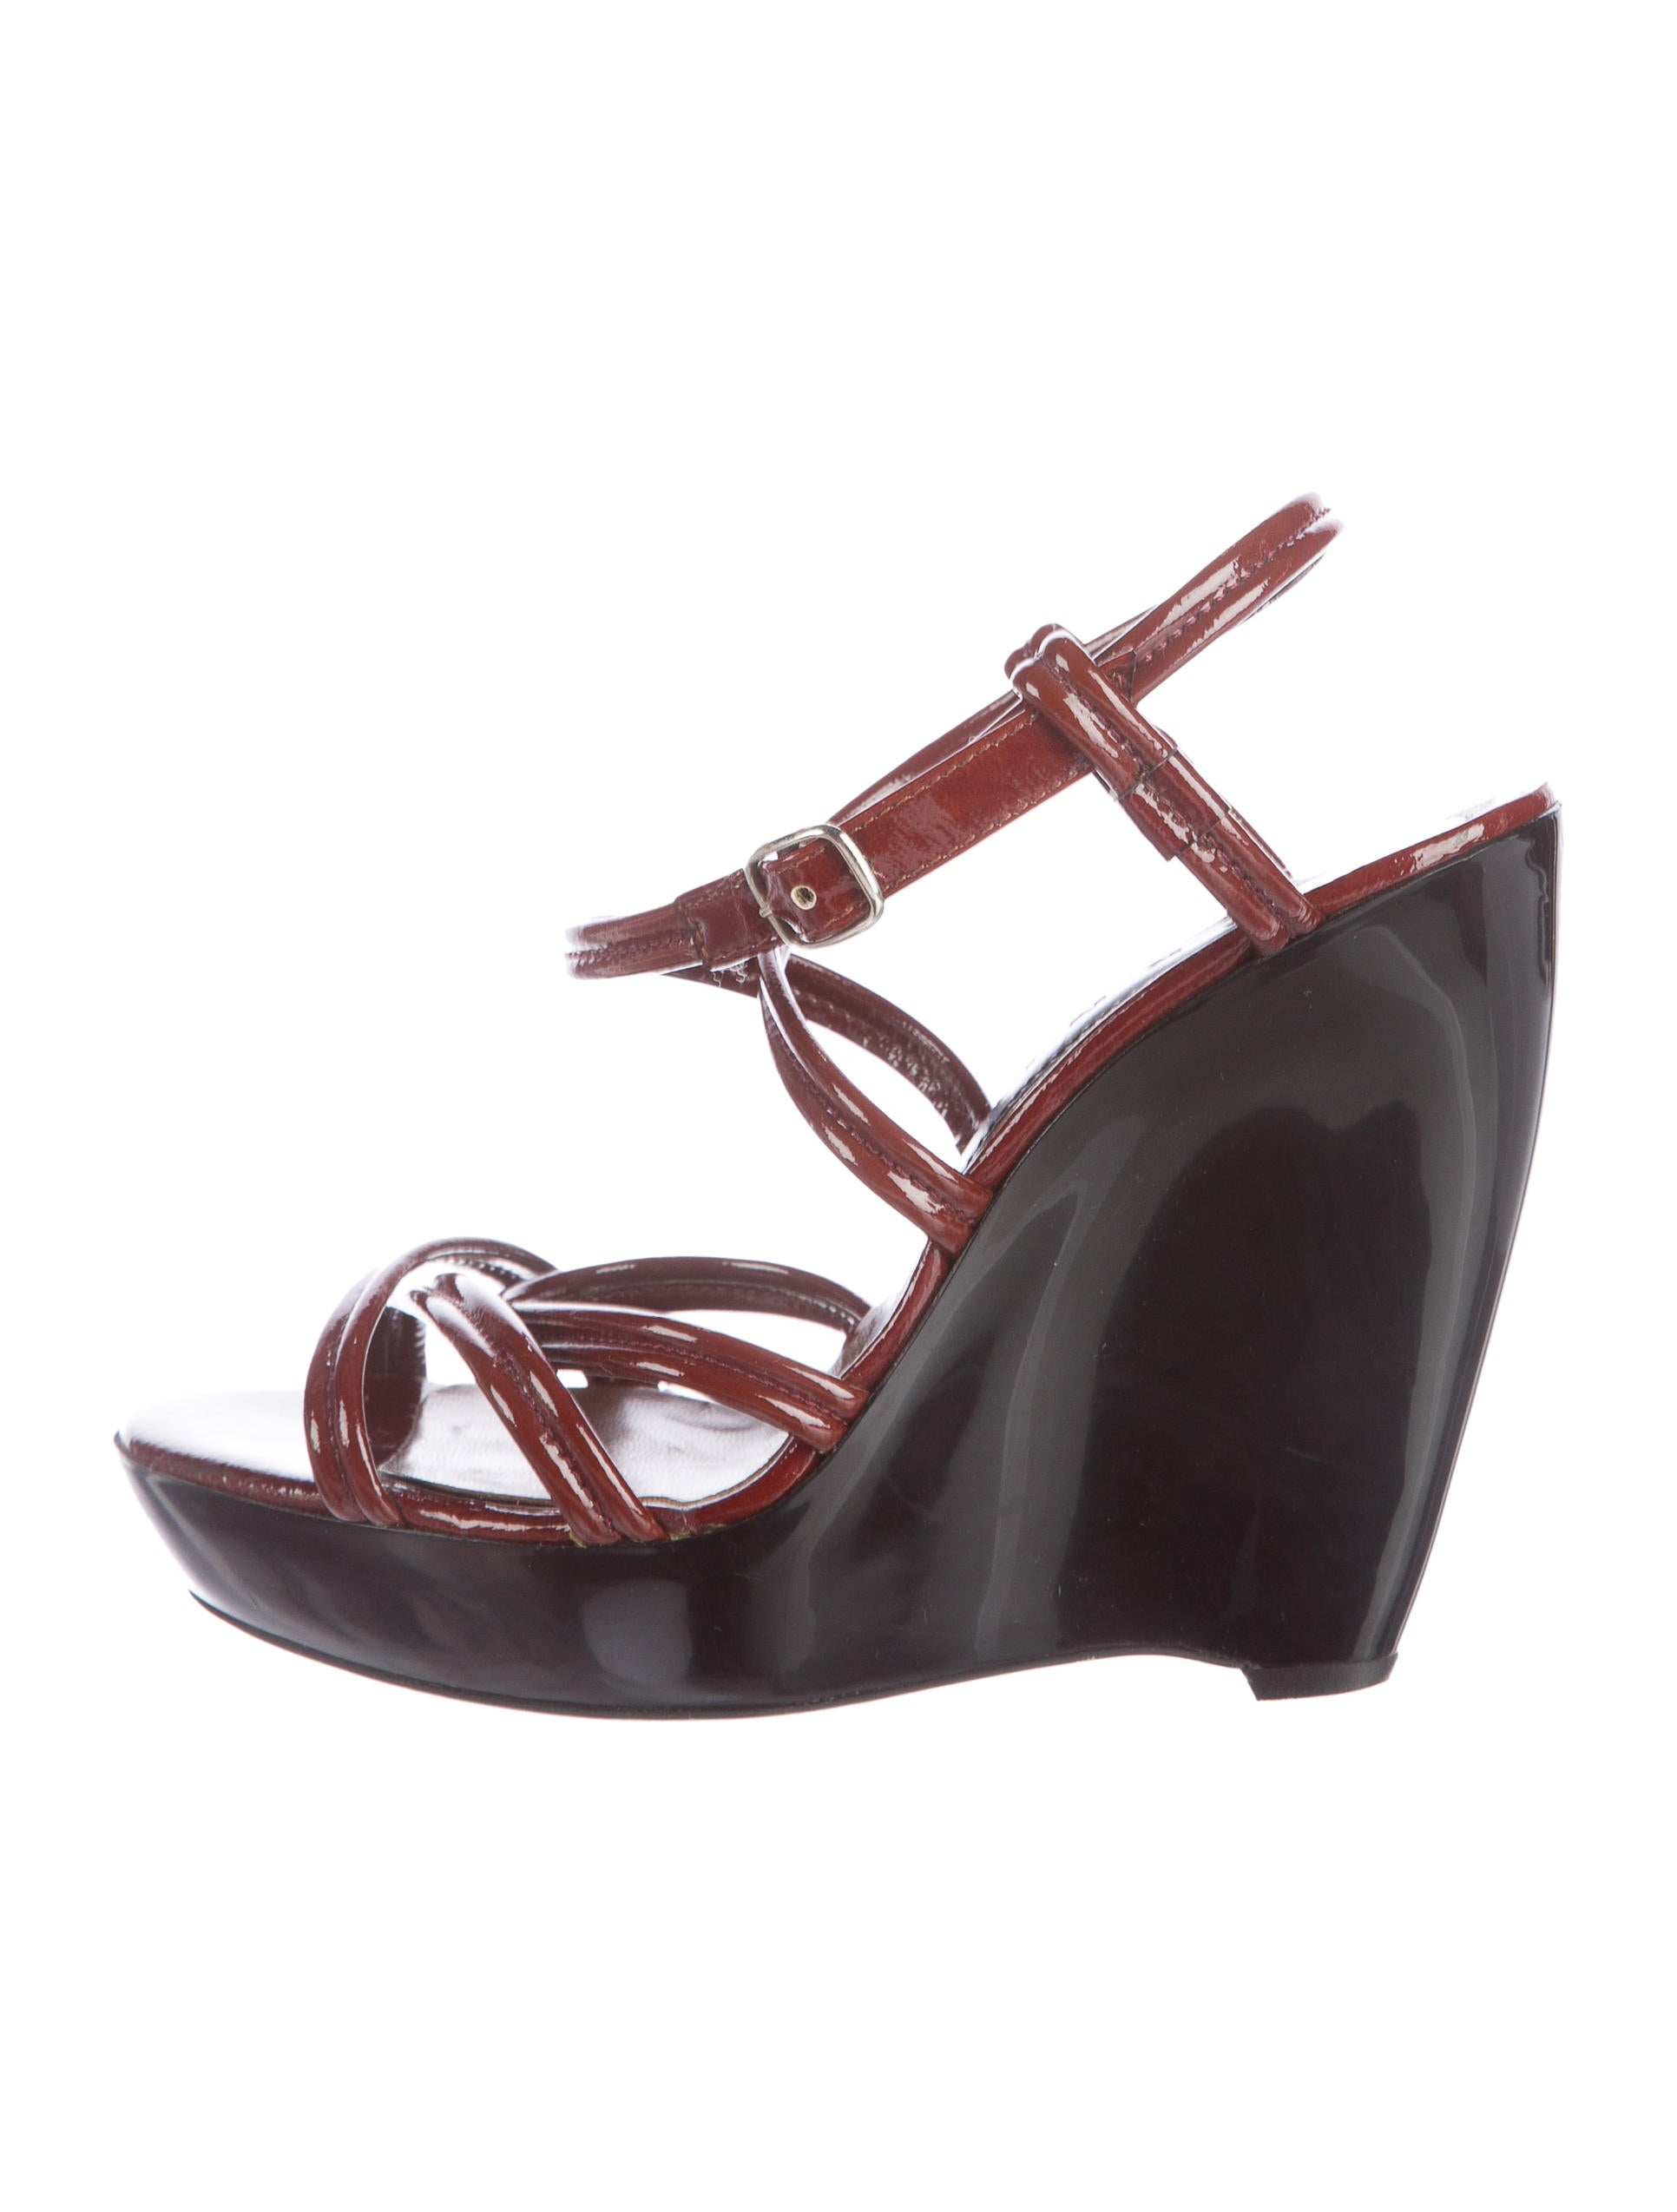 marni patent wedge sandals shoes man46663 the realreal